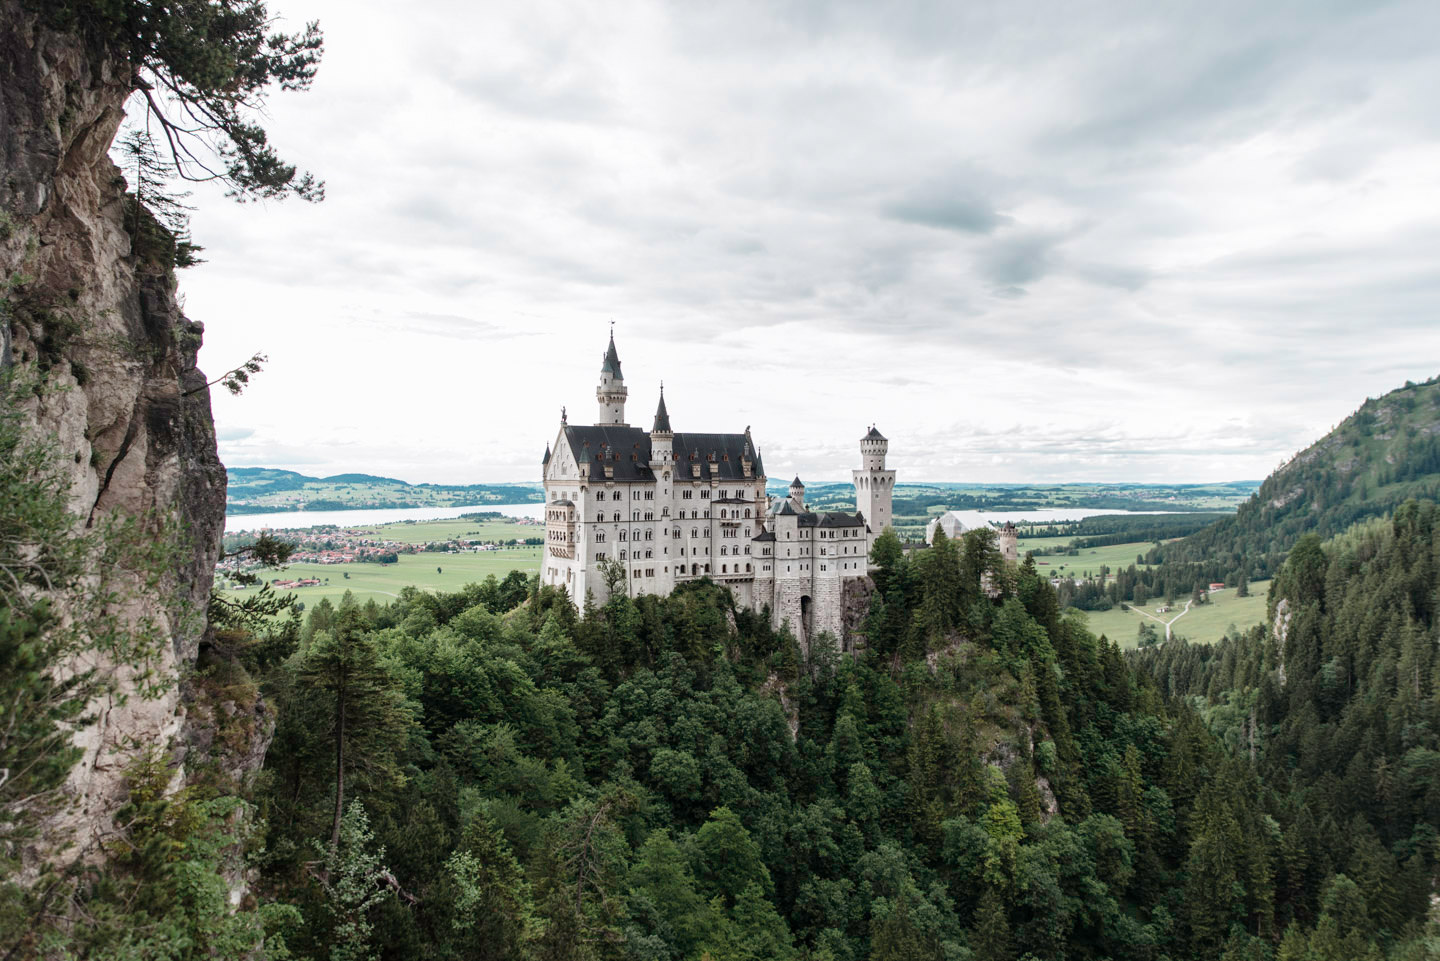 Blog-Mode-And-The-City-Lifestyle-Roadtrip-Allemagne-Autriche15